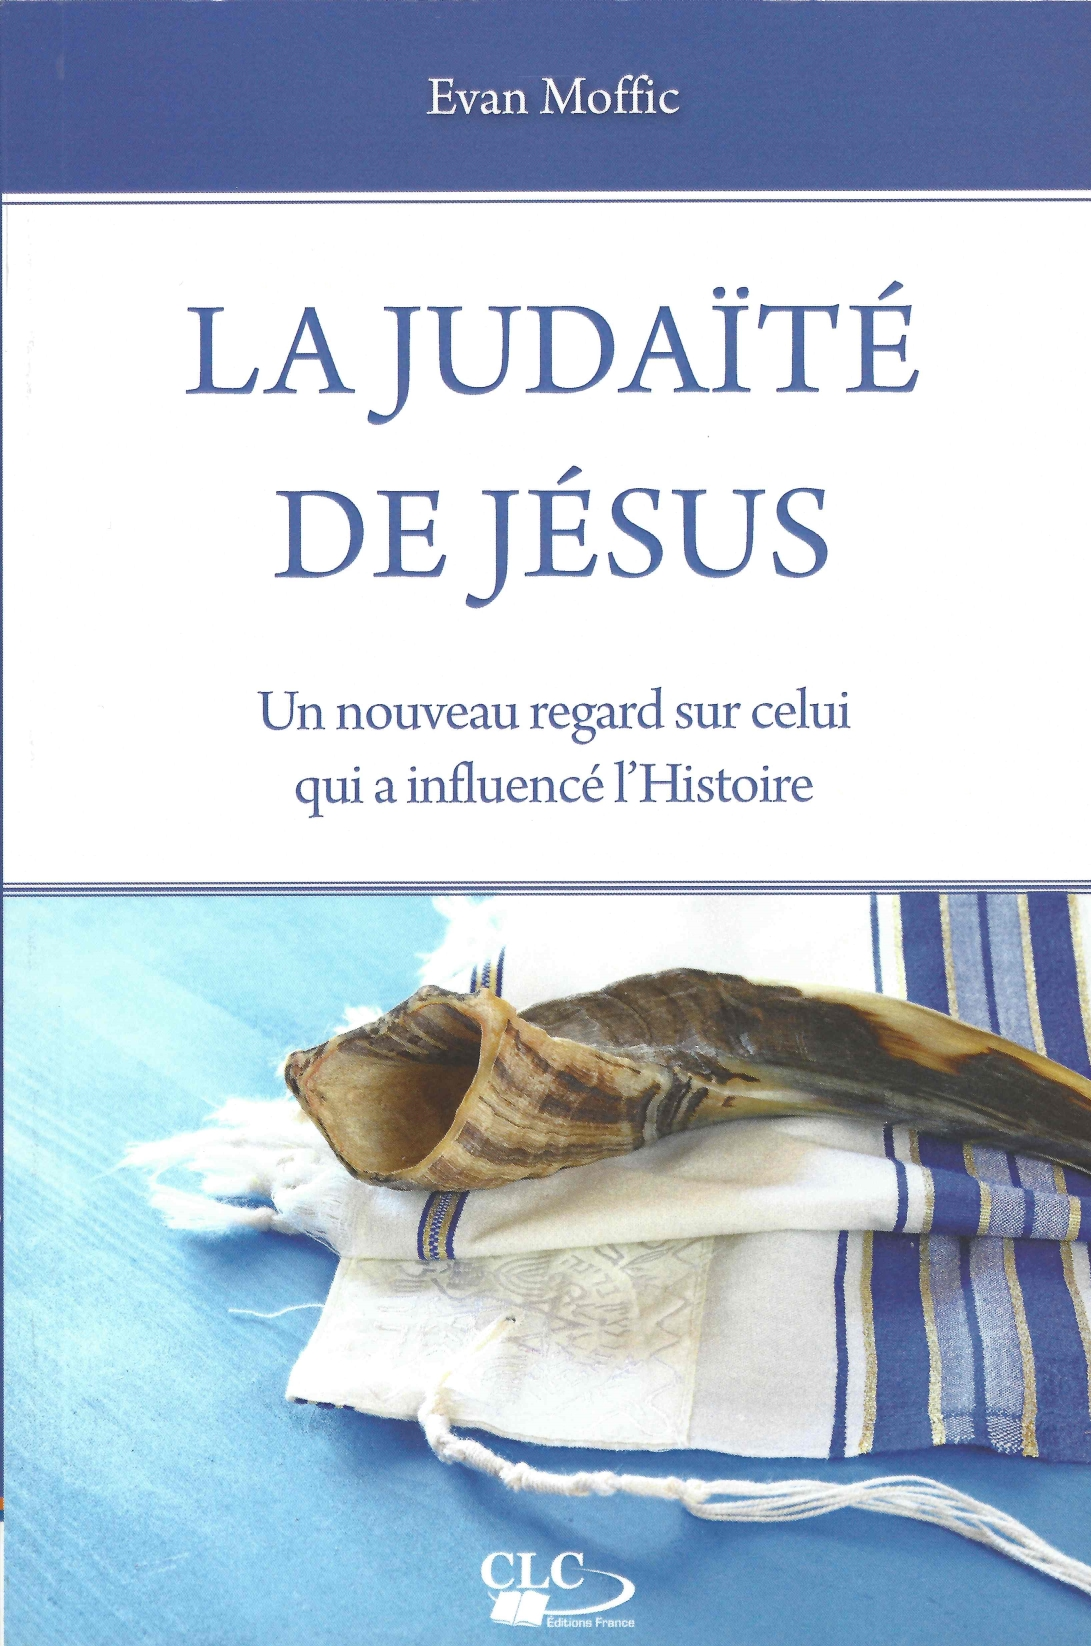 judaitejesus-couverture